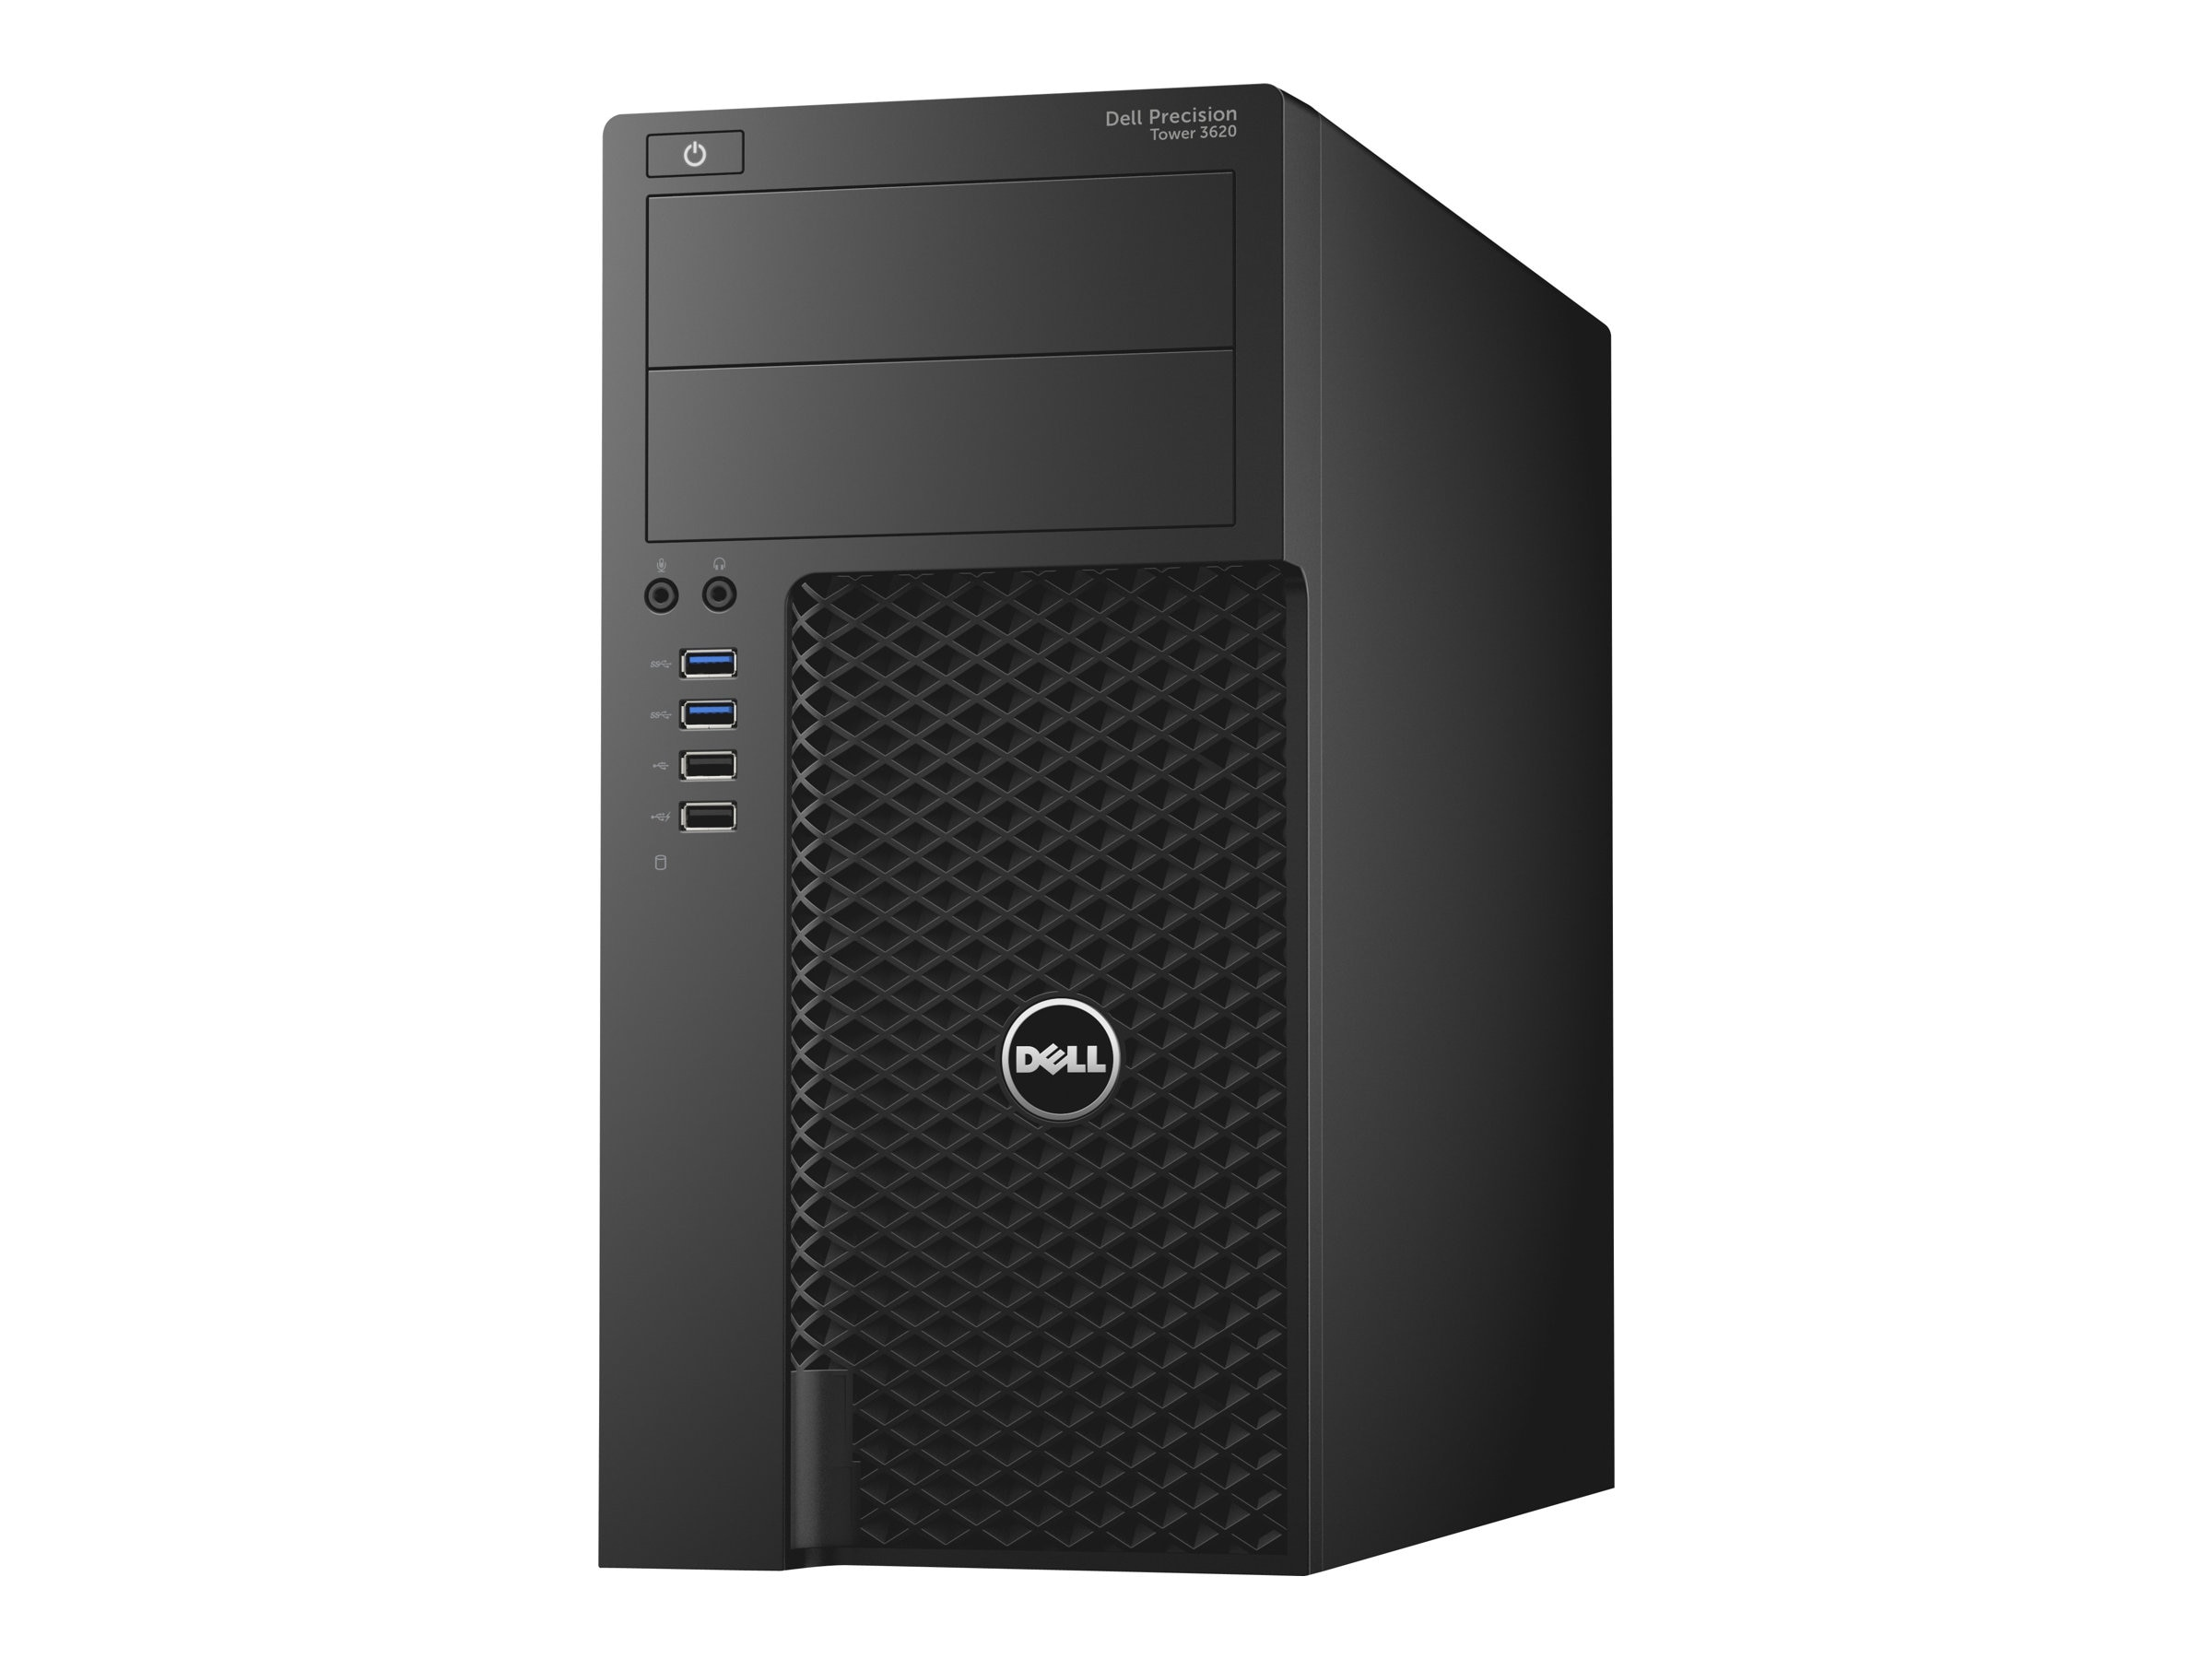 Dell Precision 3620 3.5GHz Xeon Microsoft Windows 7 Professional 64-bit Edition   Windows 10 Pro